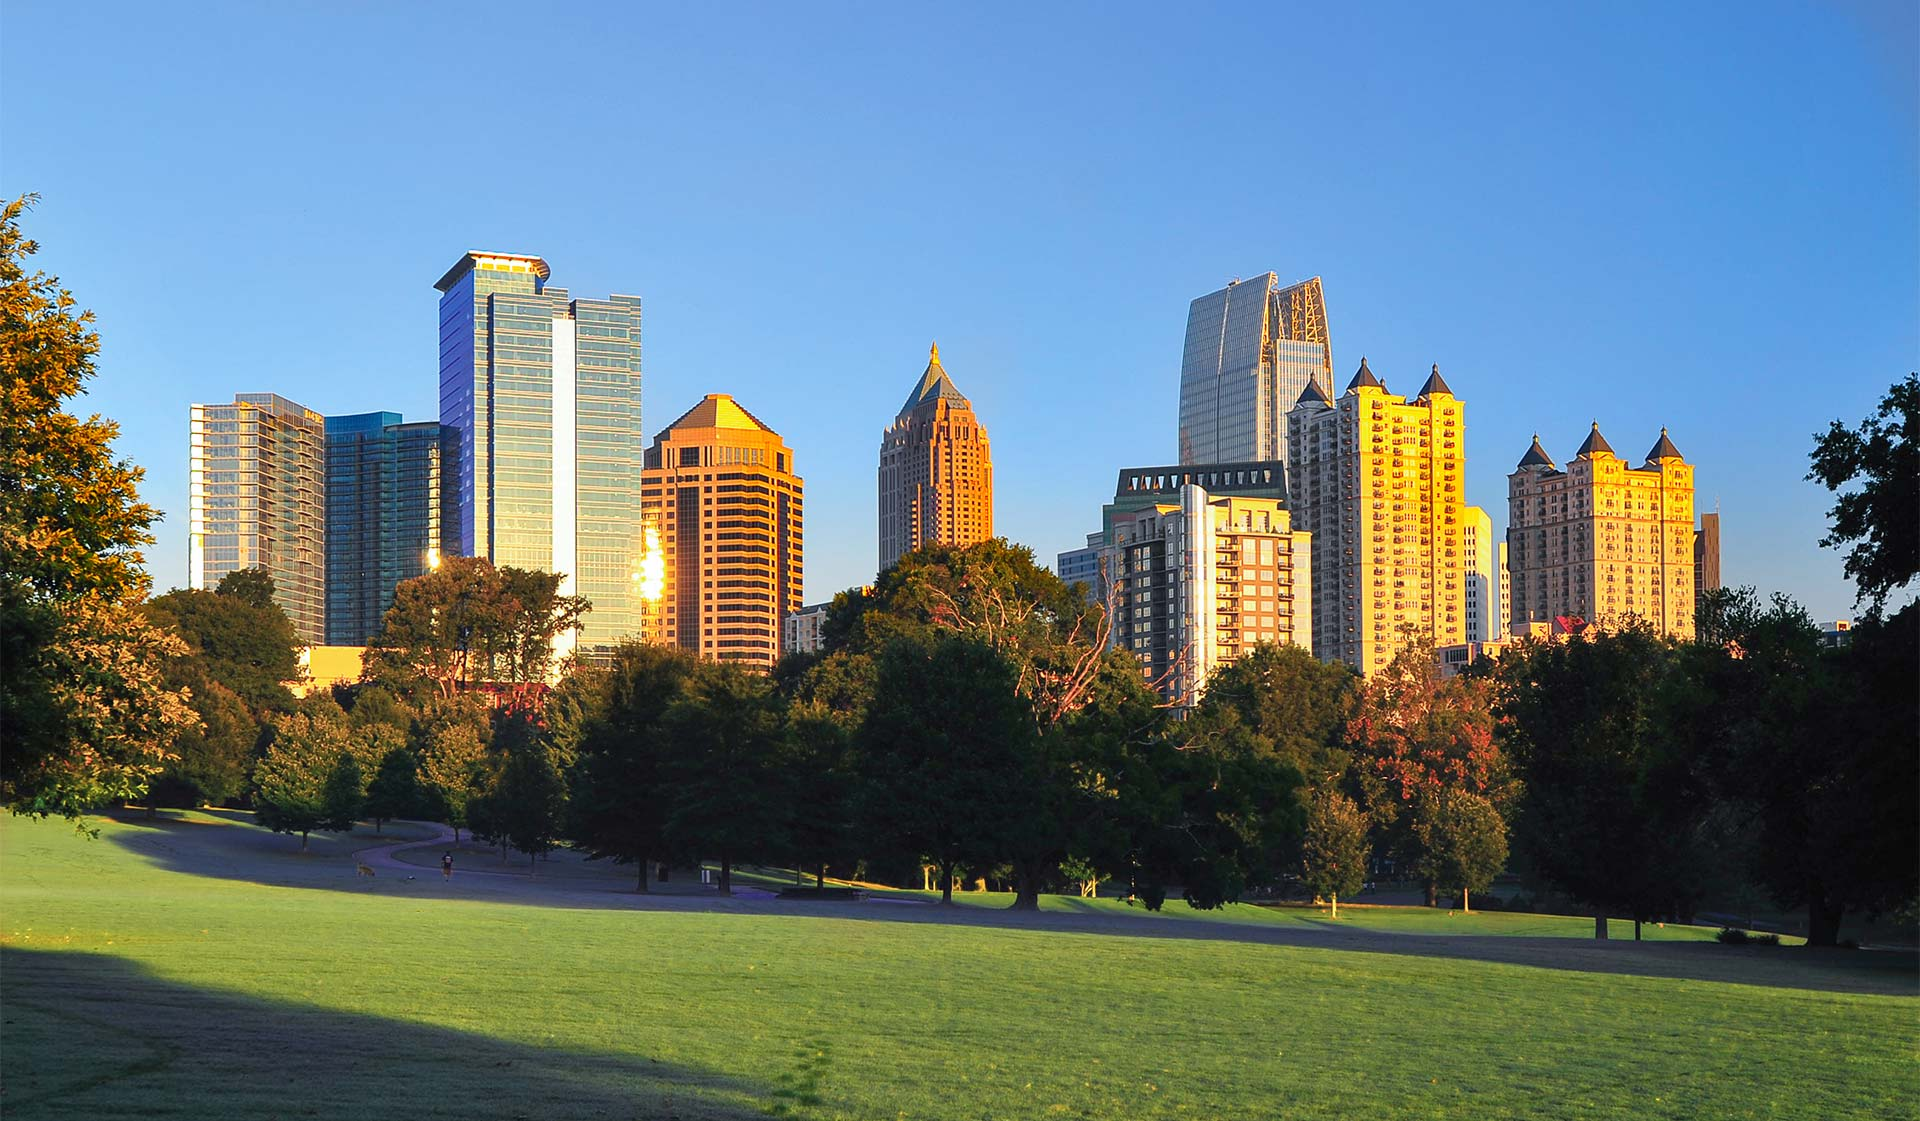 1045 On The Park - Atlanta, GA - Piedmont Park